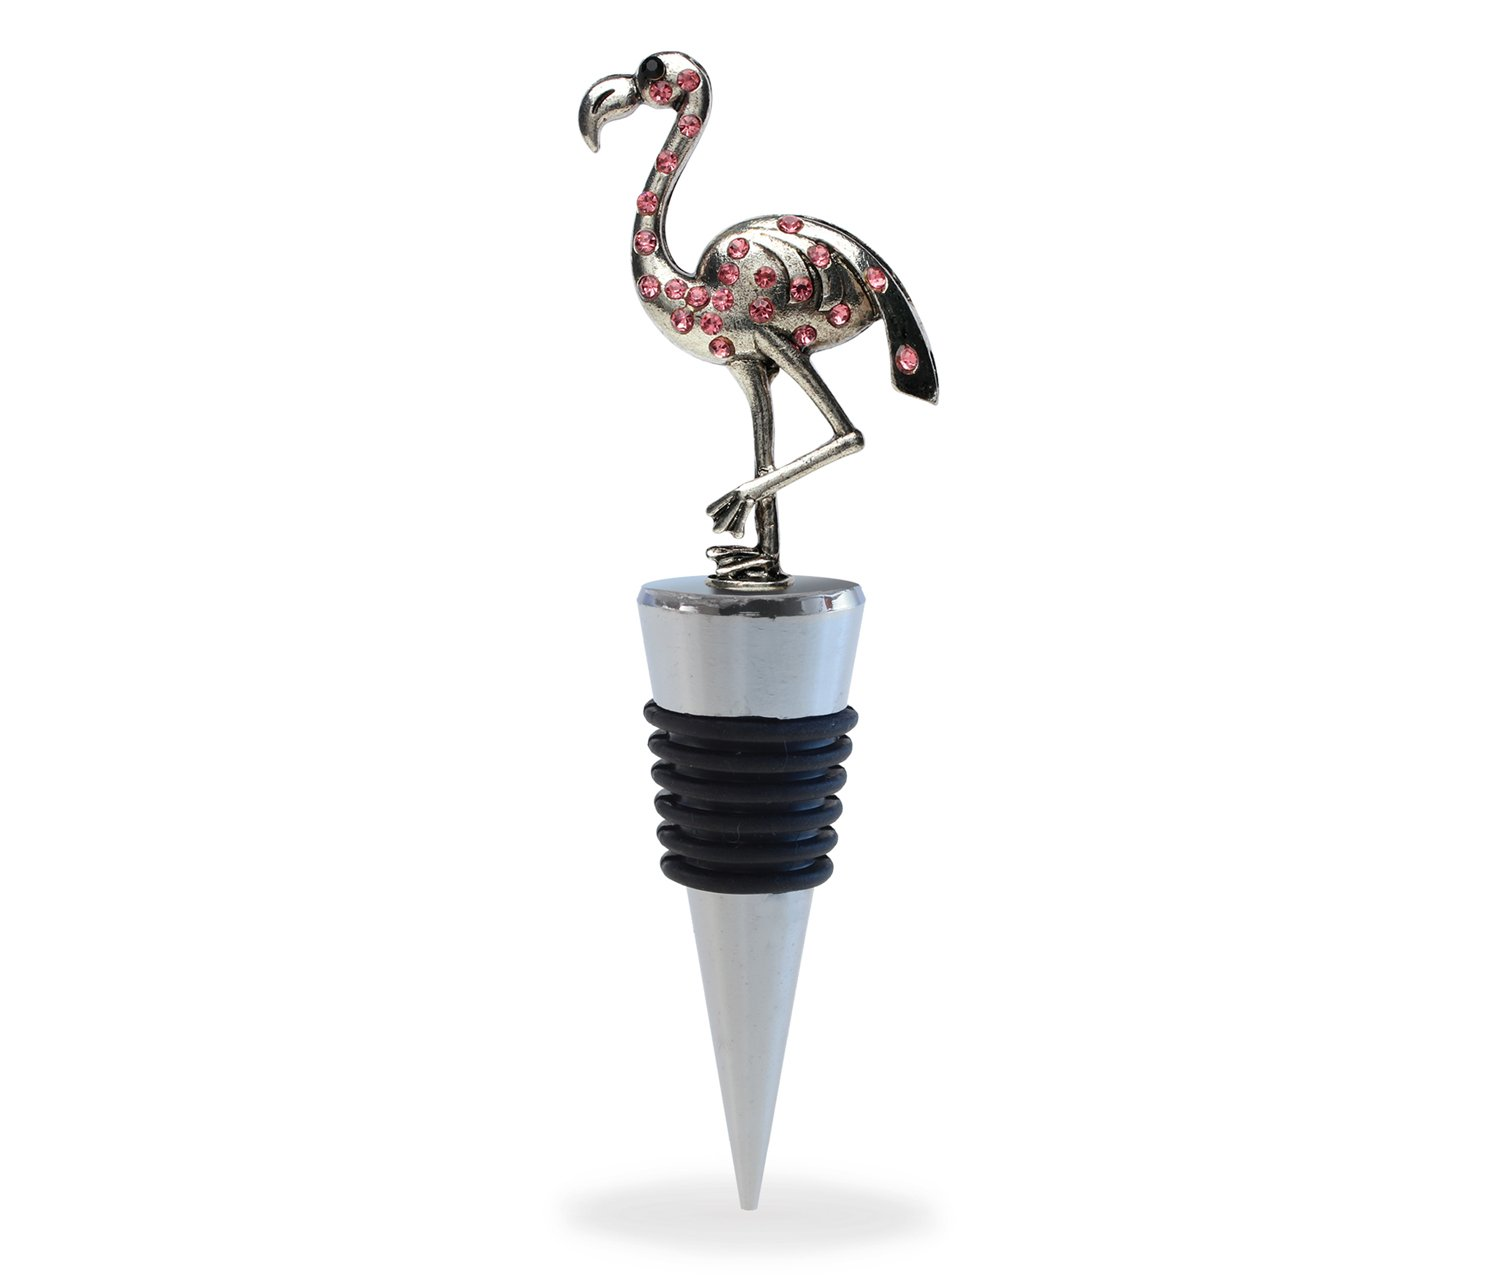 Puzzled Flamingo Wine Bottle Stopper Unique Well Crafted 5 Inch Metal Plug With Pink Crystals - Reusable Champagne Preserver Perfect Wine Lover Decor Gift - Animals Collection - Cheers 6058